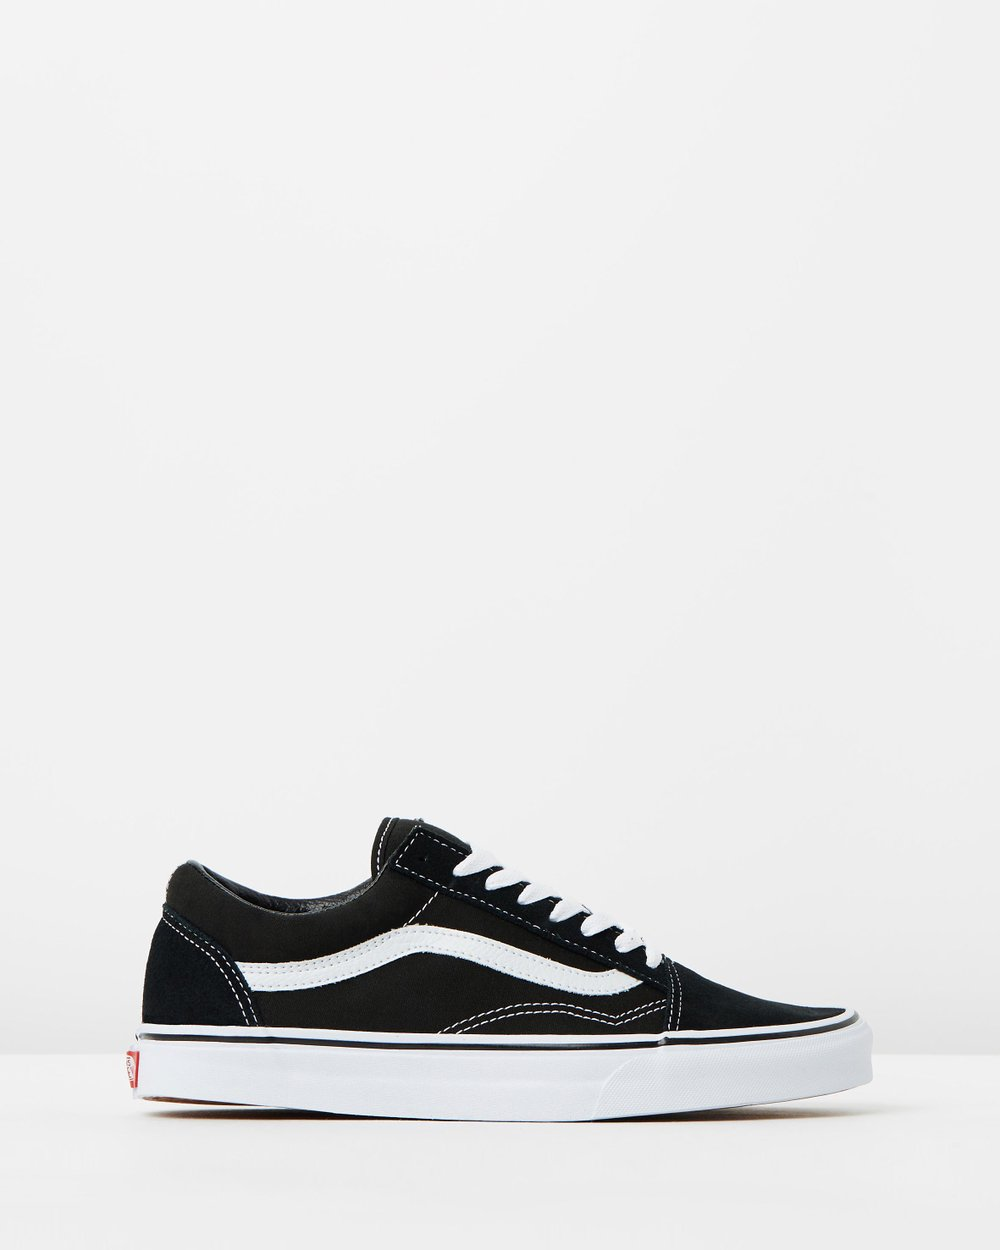 92126c1754 Old Skool by Vans Online